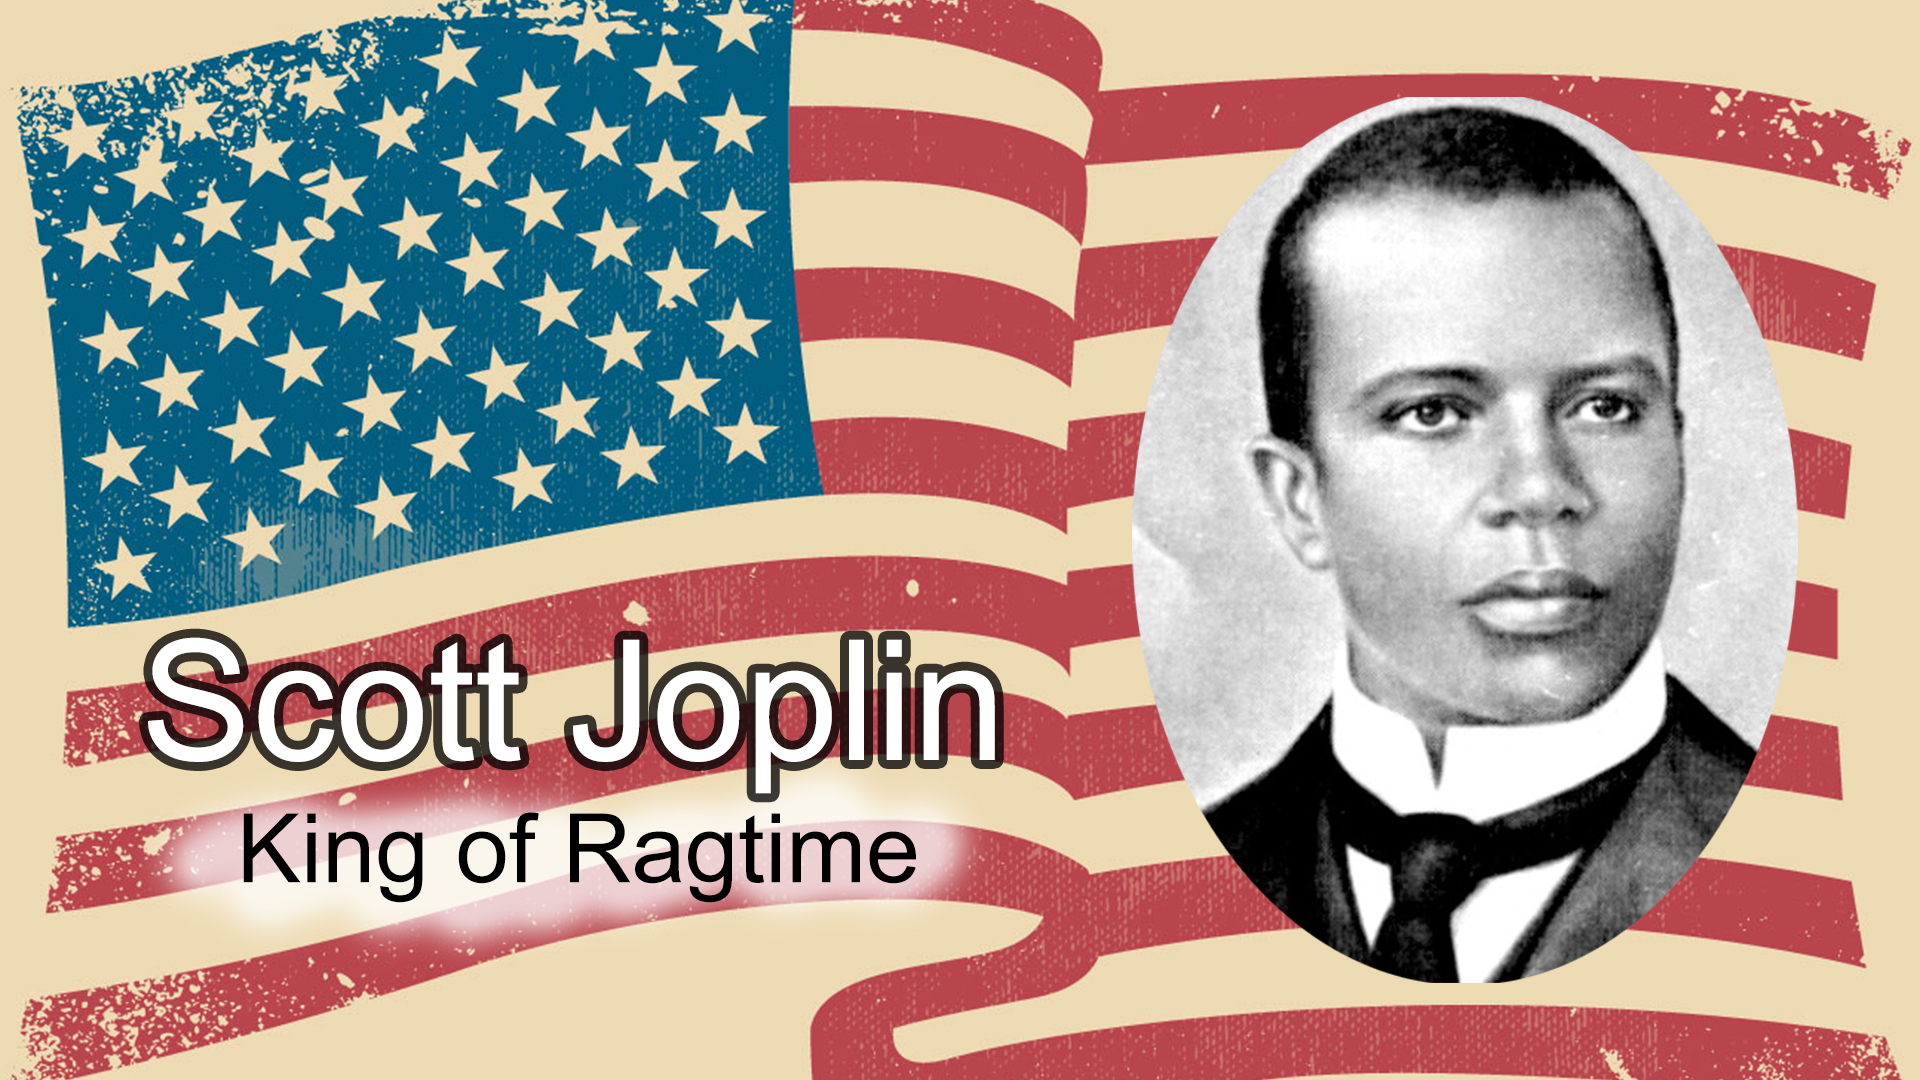 5 Days of a Great Musician: The Story & Music of Scott Joplin